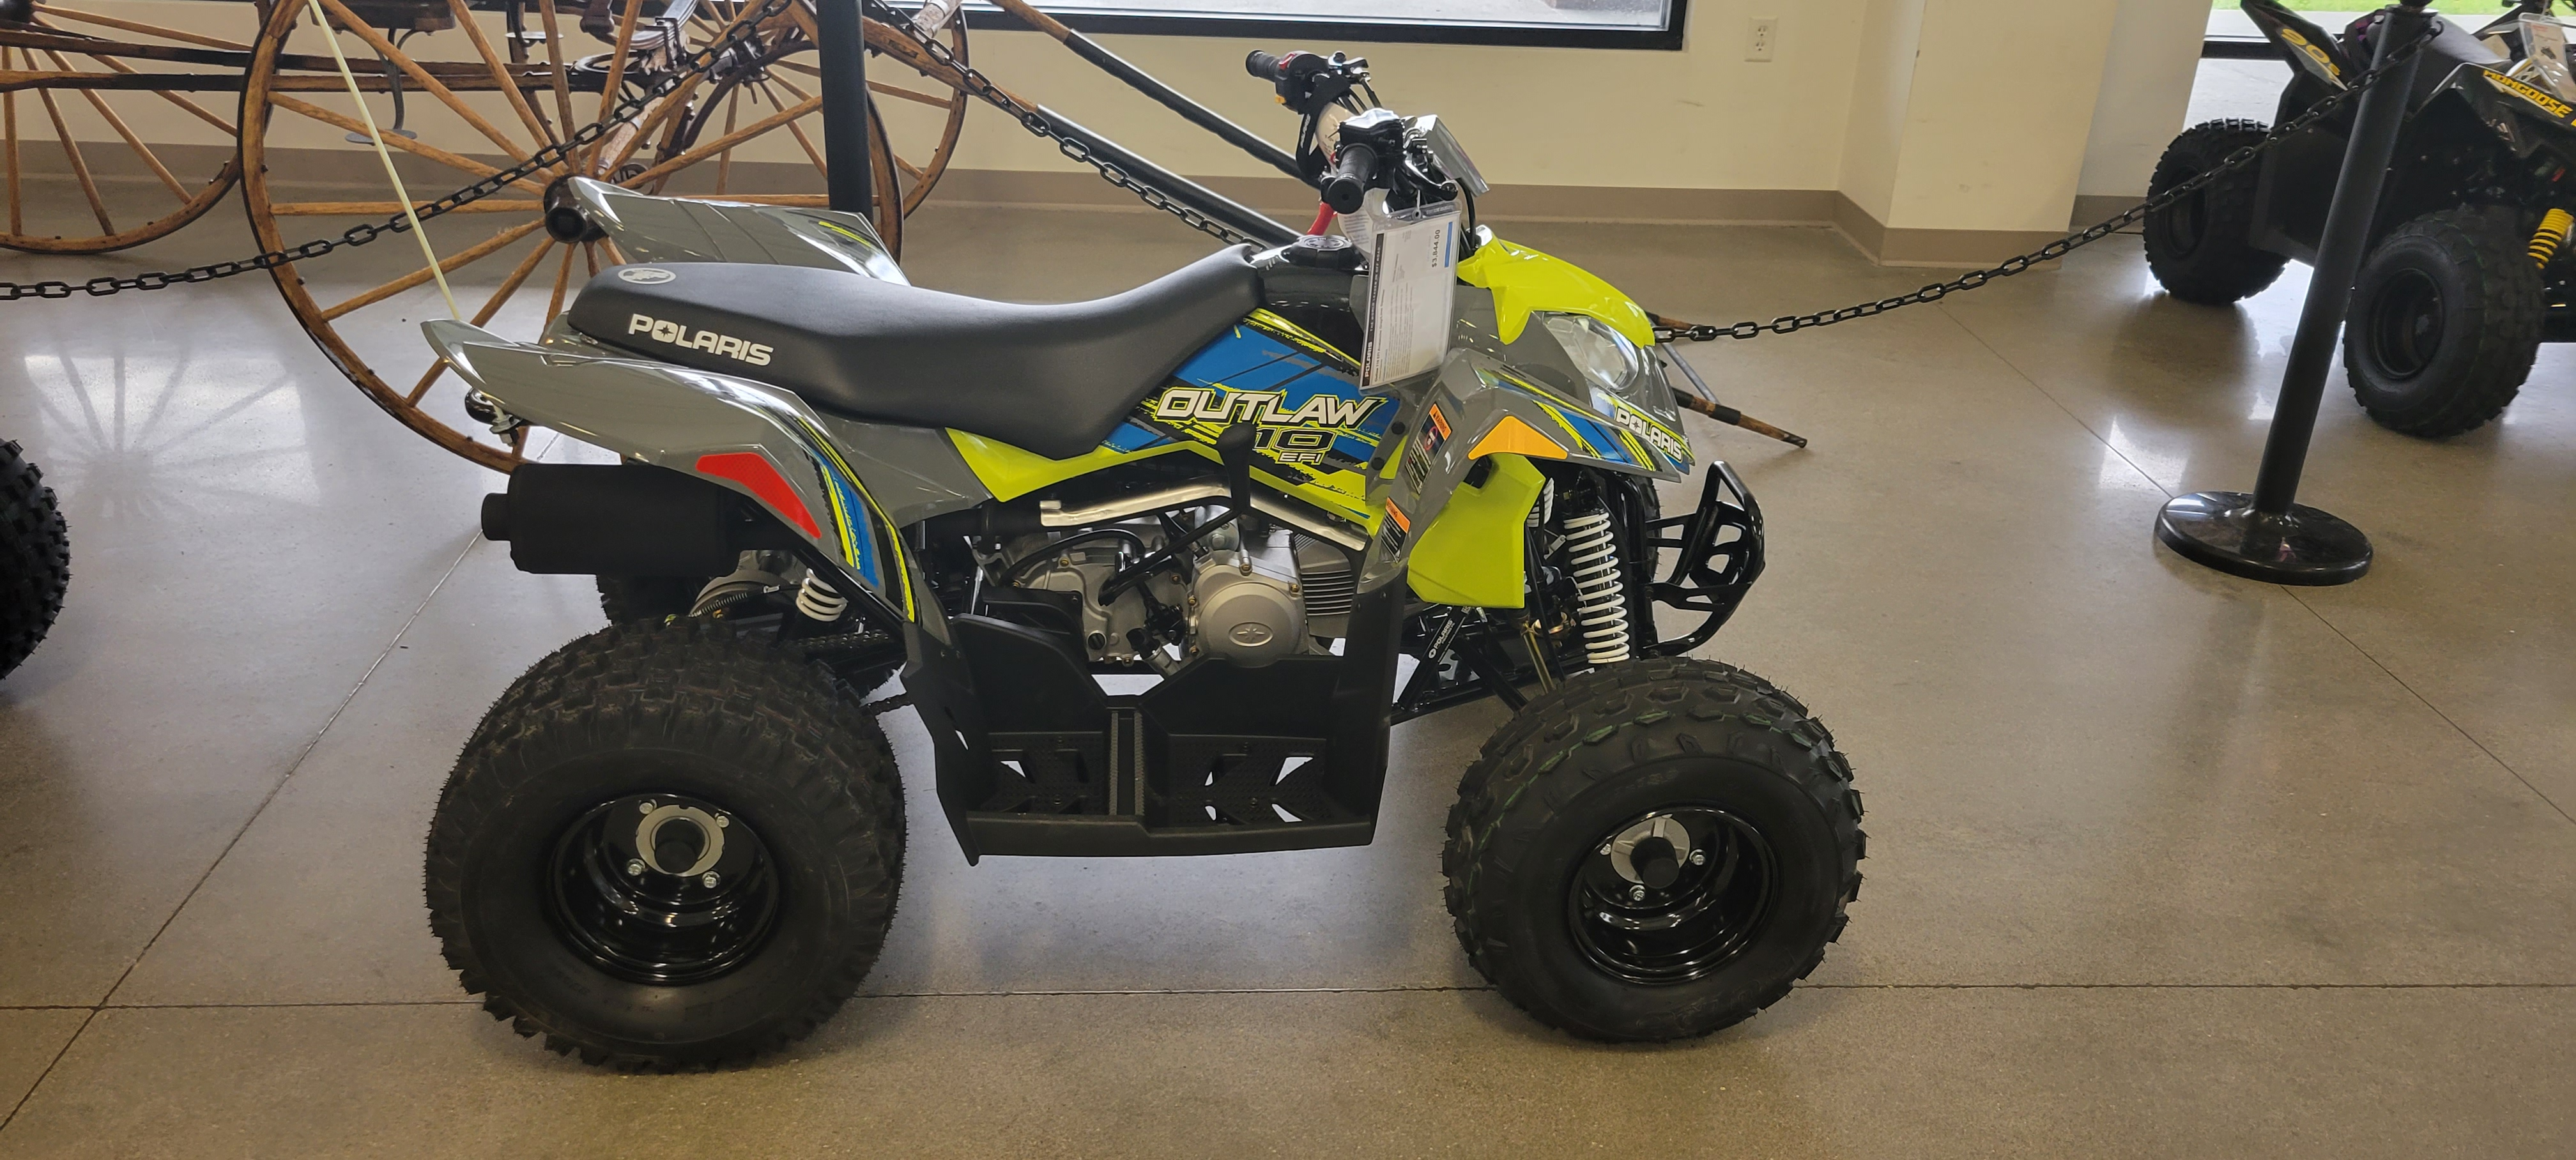 2022 Polaris Outlaw 110 EFI at Brenny's Motorcycle Clinic, Bettendorf, IA 52722